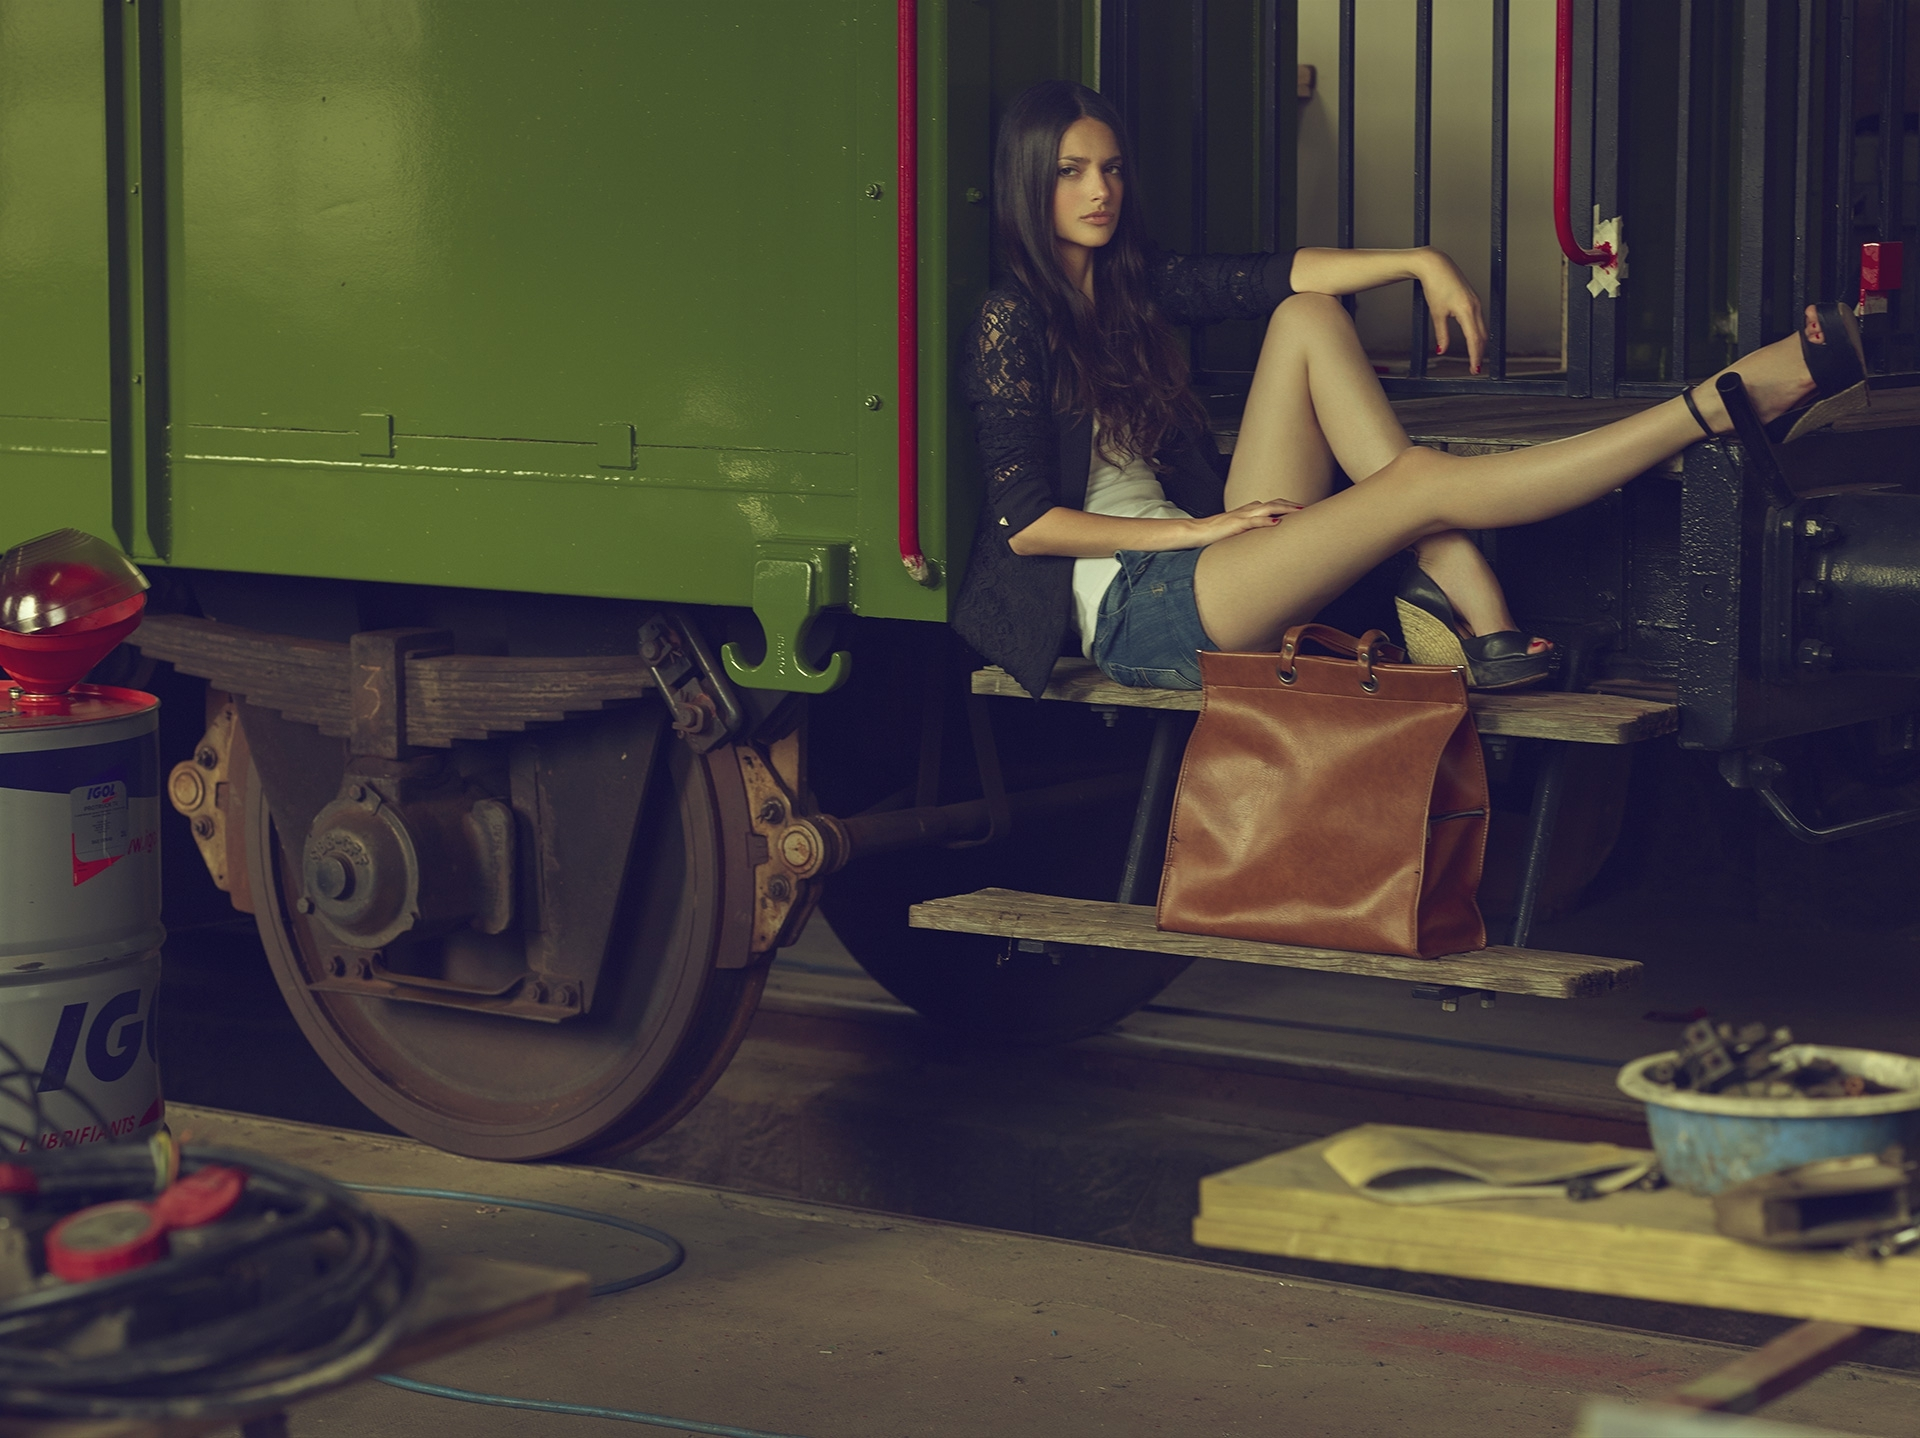 old train garage frederic mercier photographer edito lifestyle us american dream jean fashion one color